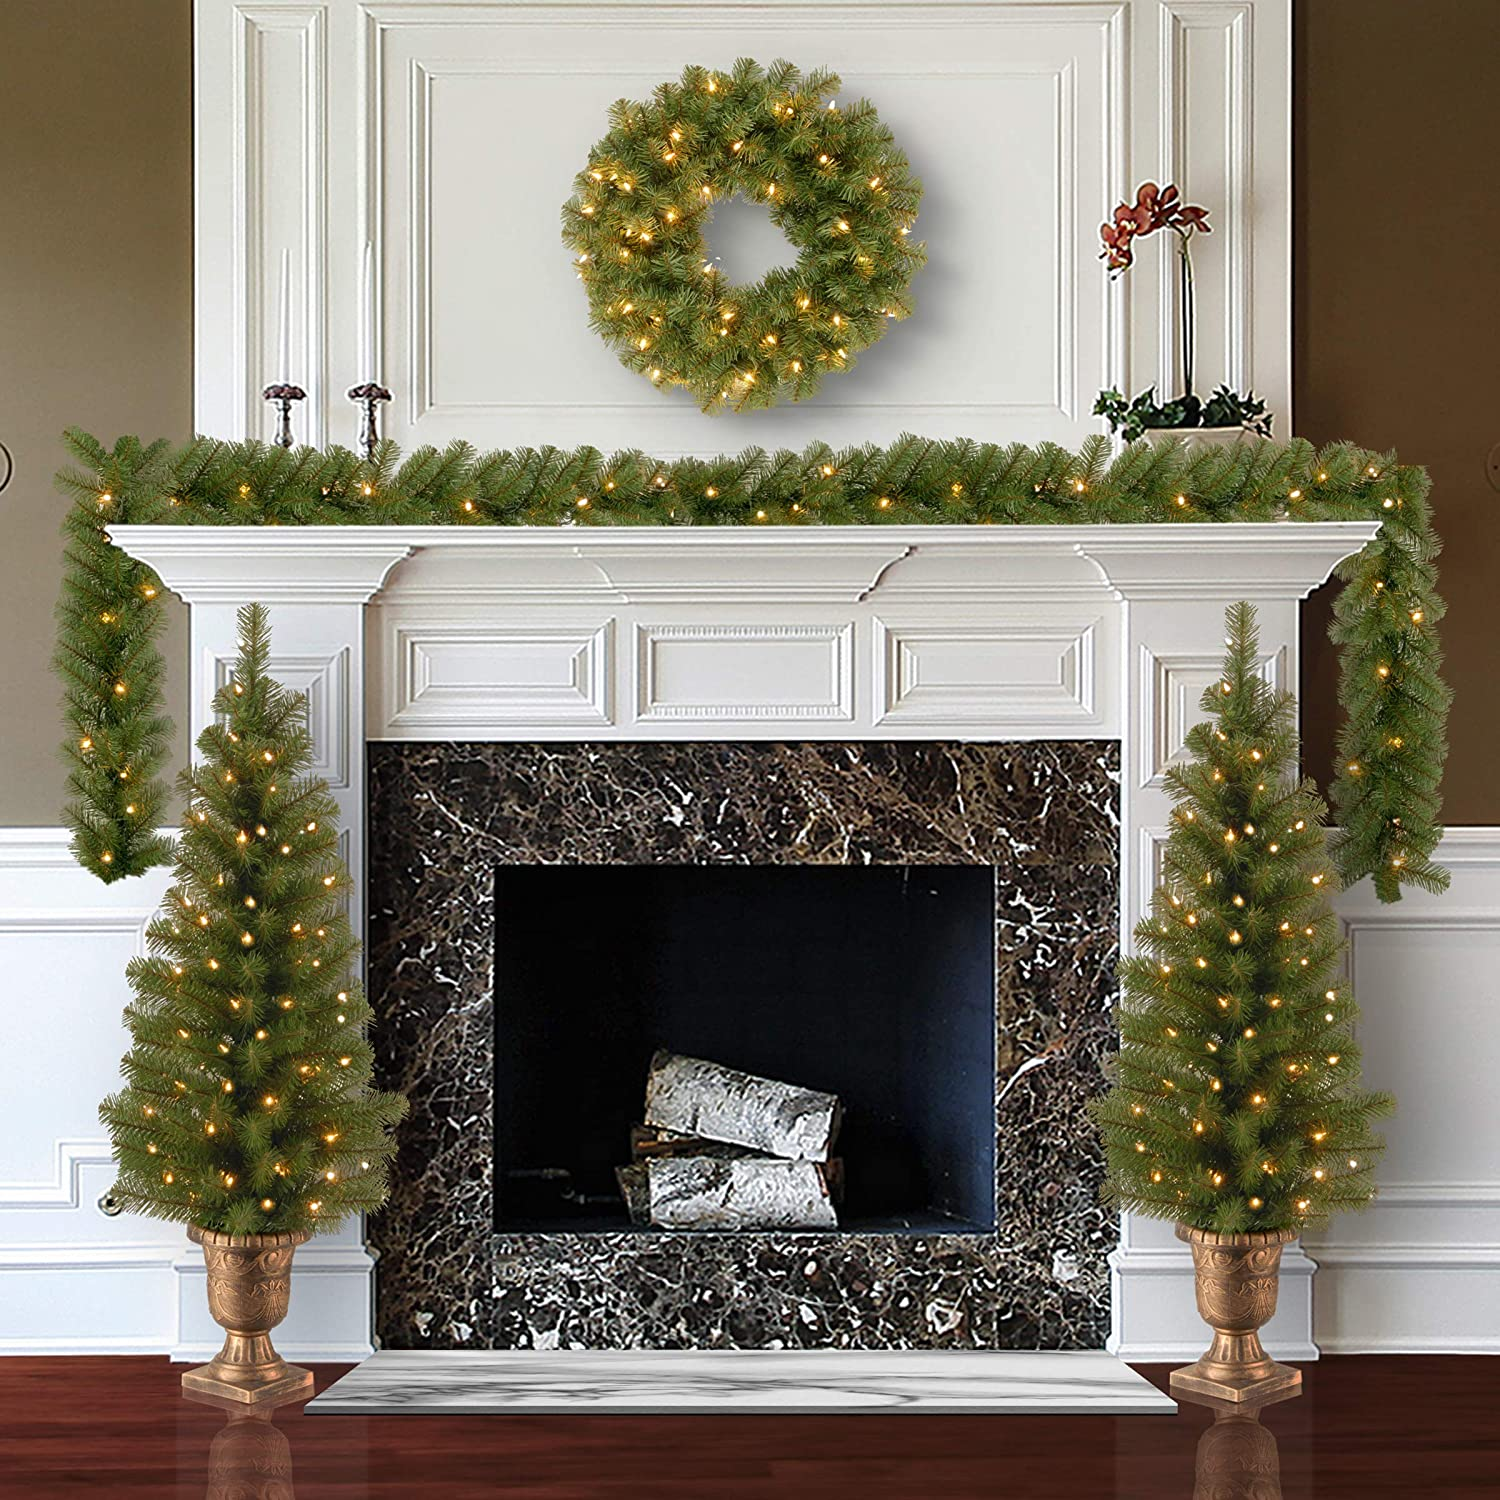 National Tree Company Pre-lit Holiday Christmas 4-Piece Set | Garland, Wreath and Set of 2 Entrance Trees